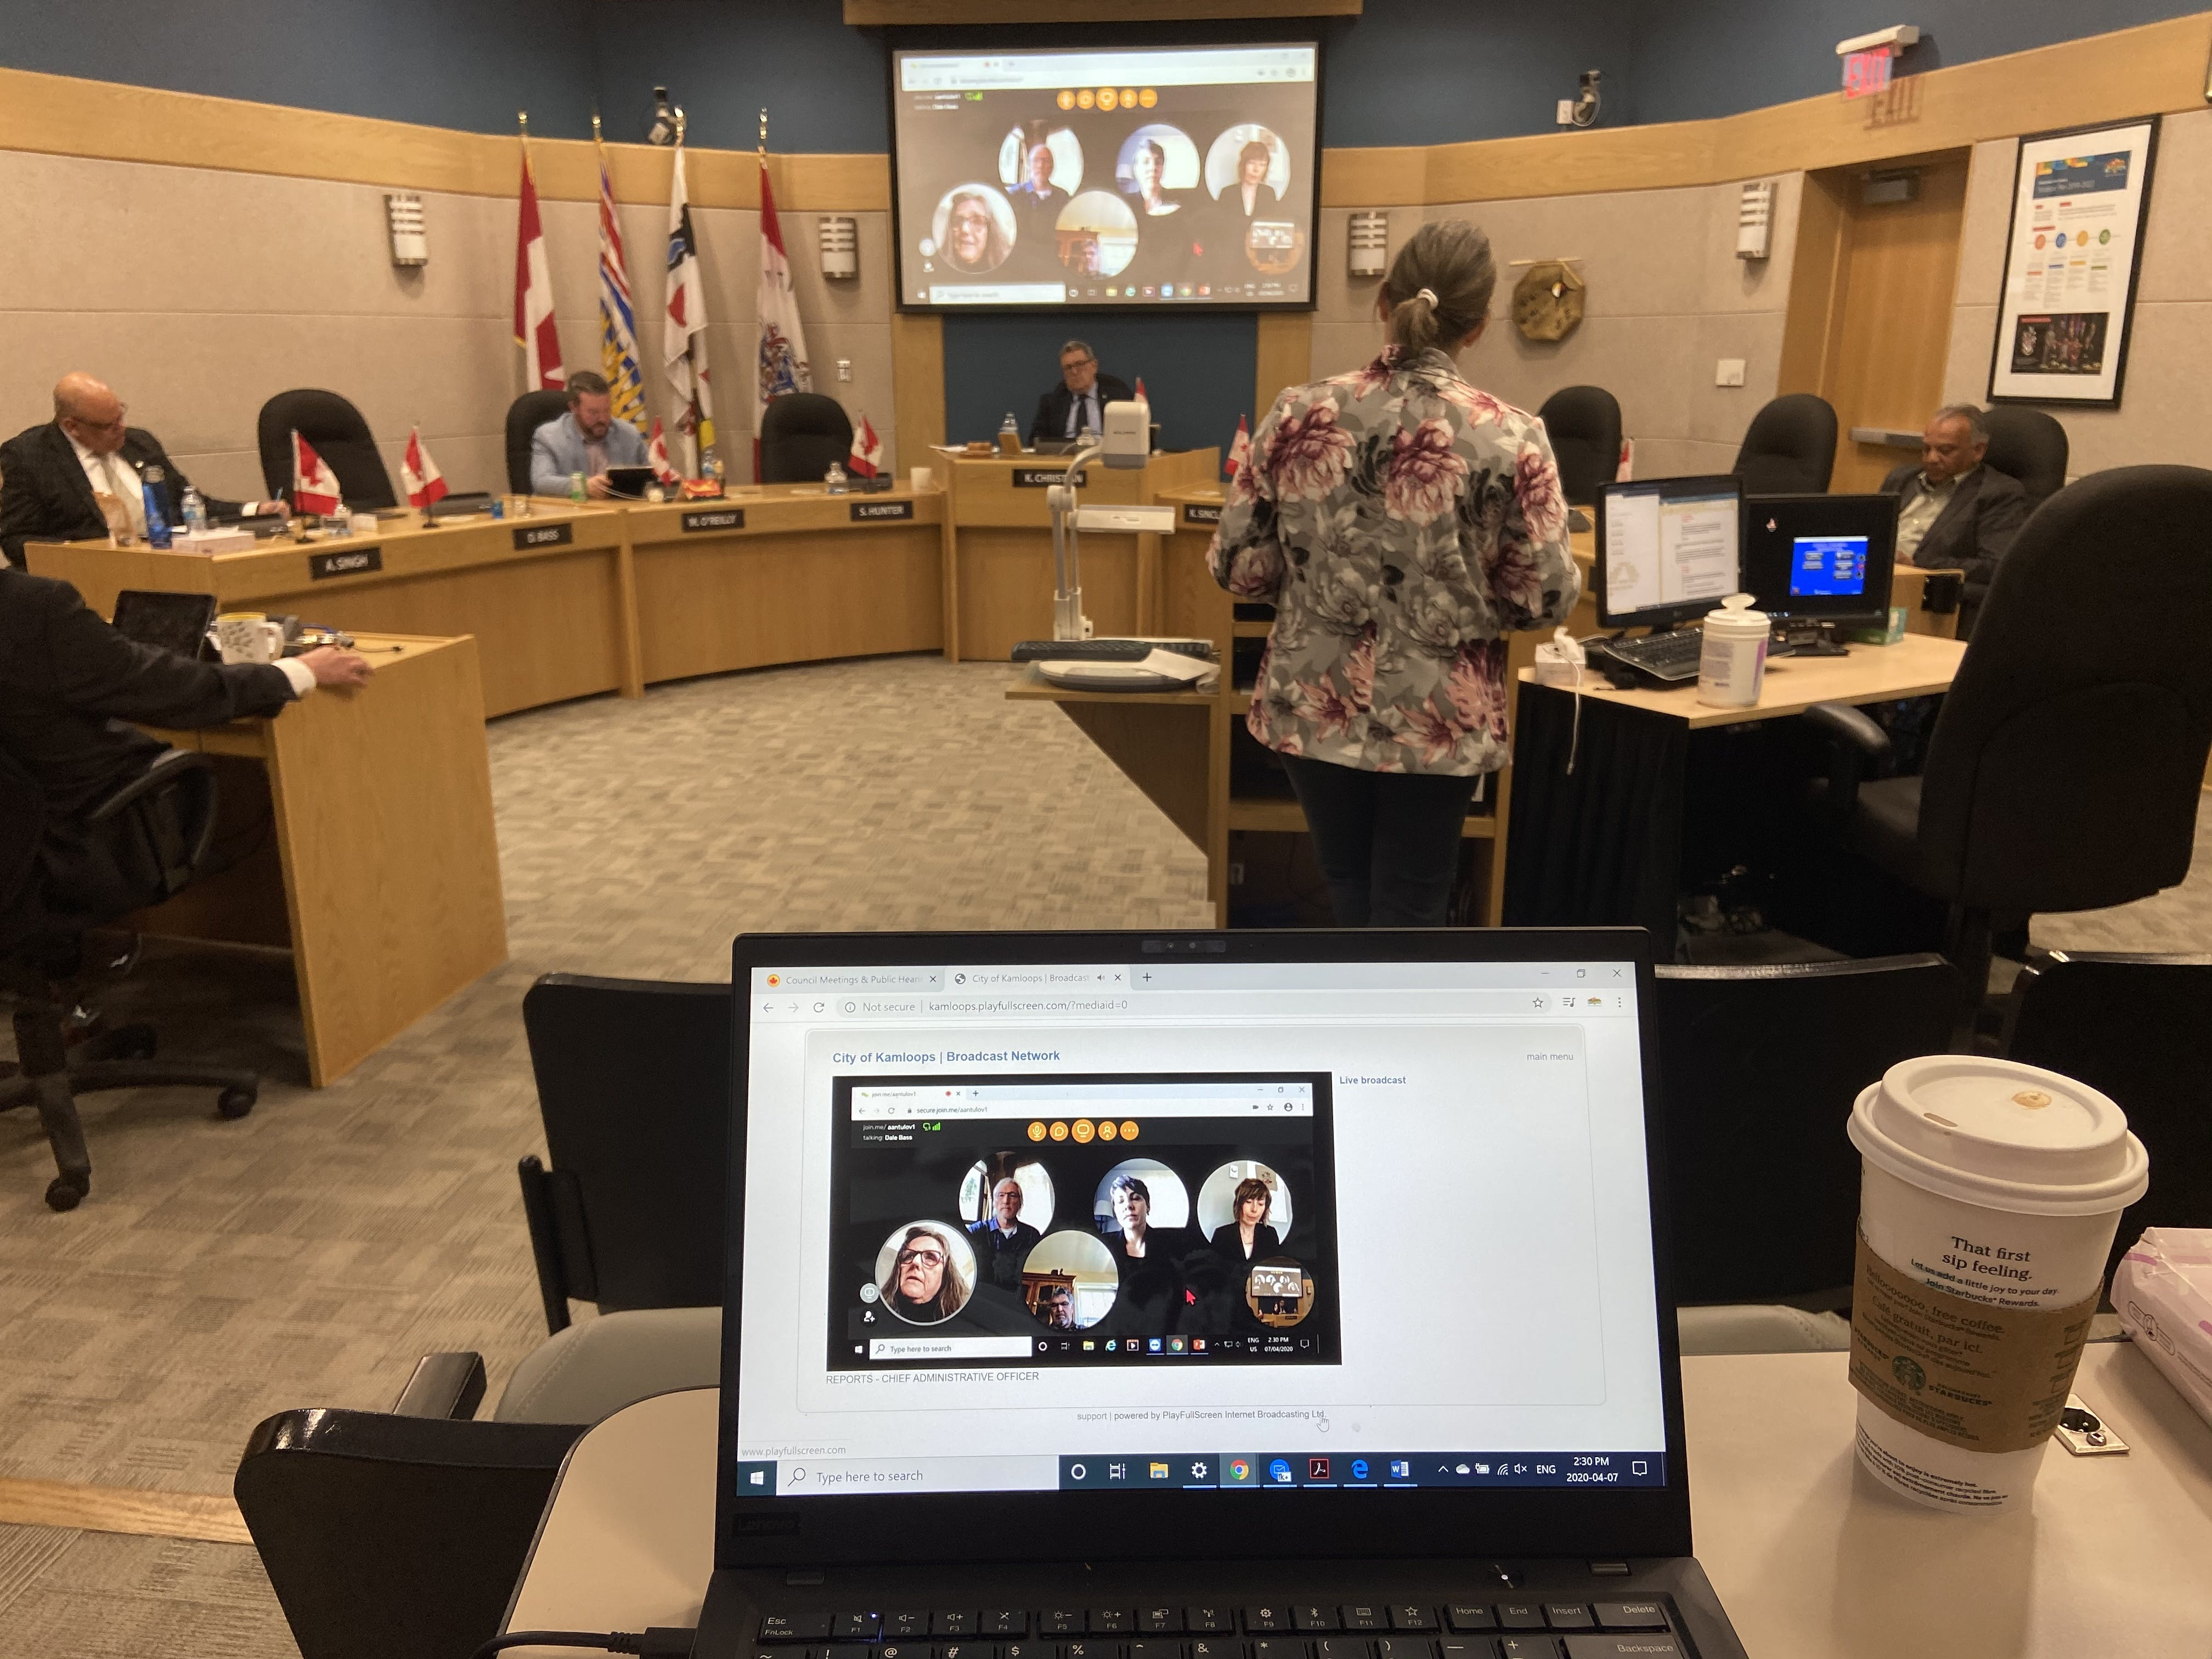 First City Council Meeting with Physical Distancing